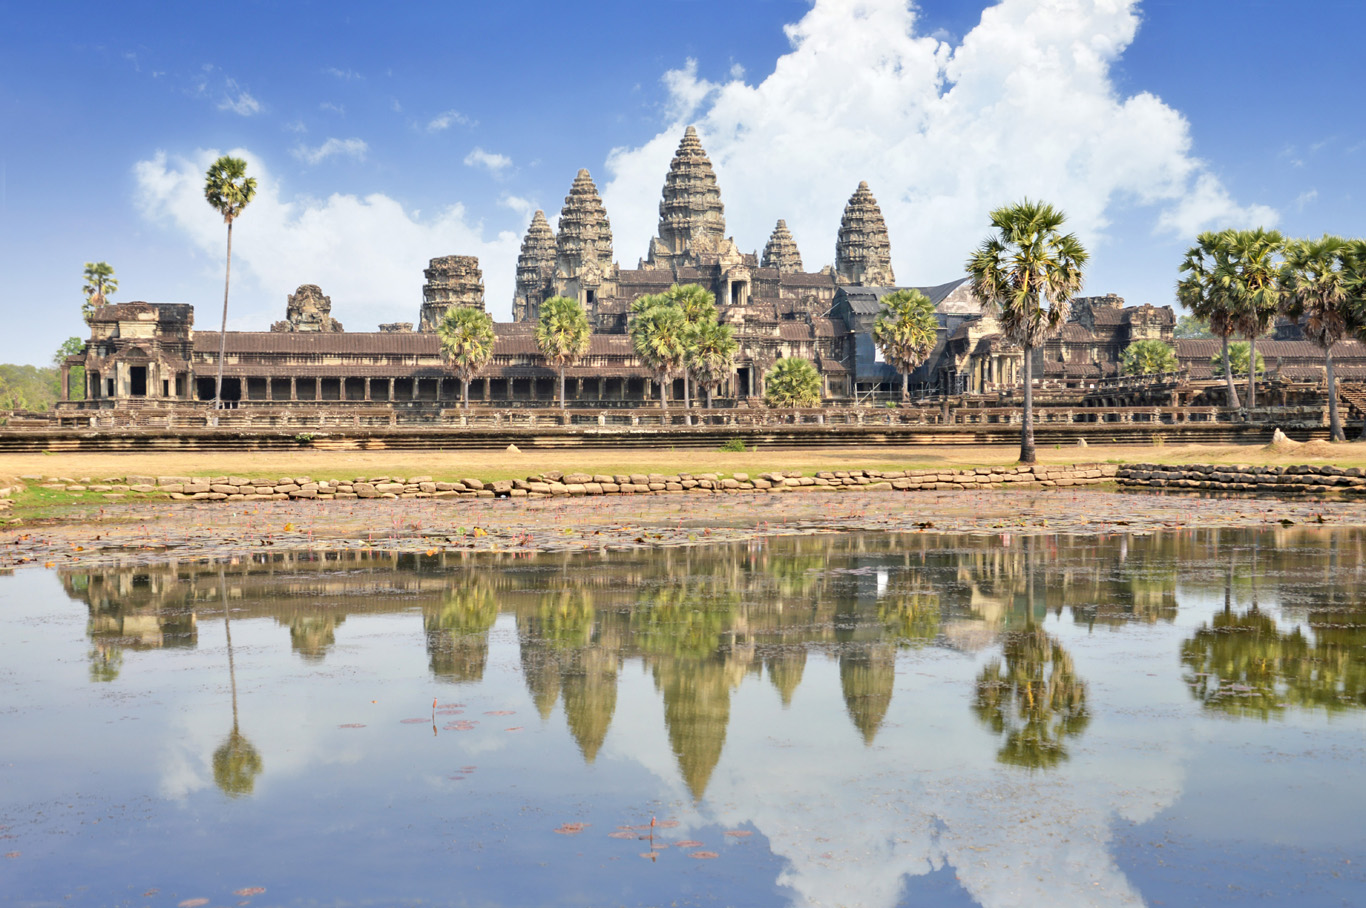 The Angkor Wat Temple complex